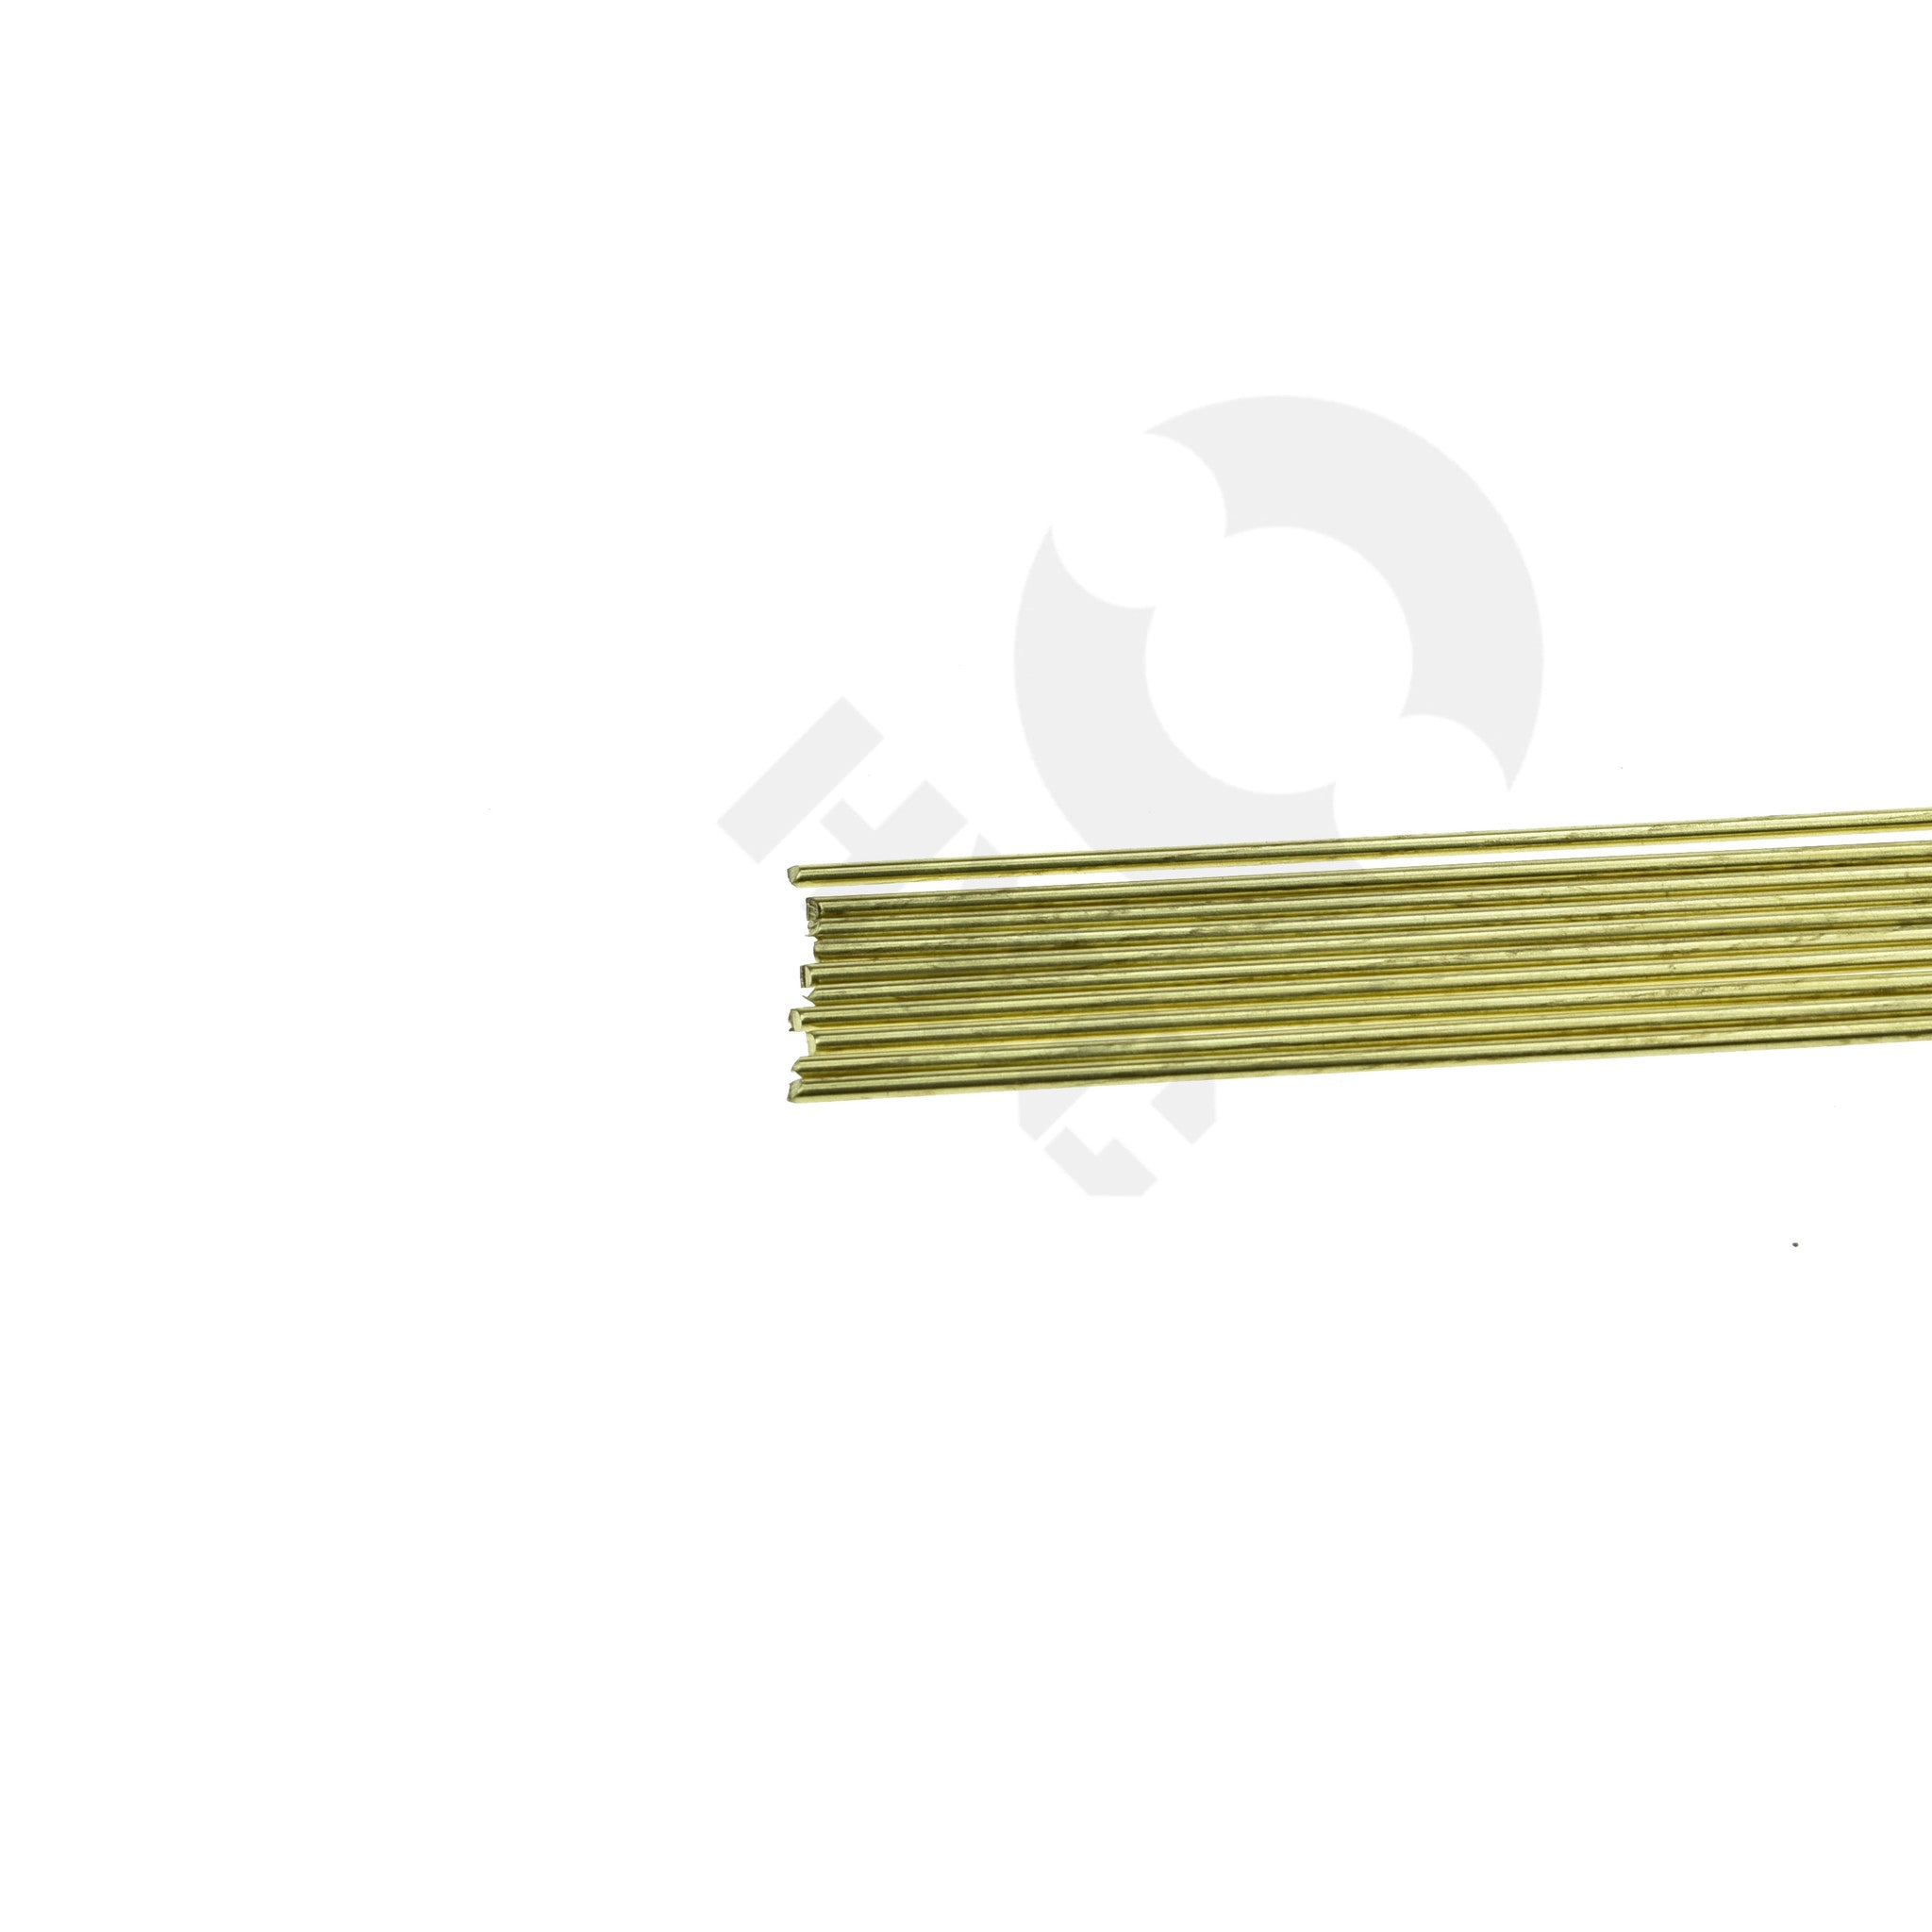 Pinning Brass Rods 2mm - WargameBase Store